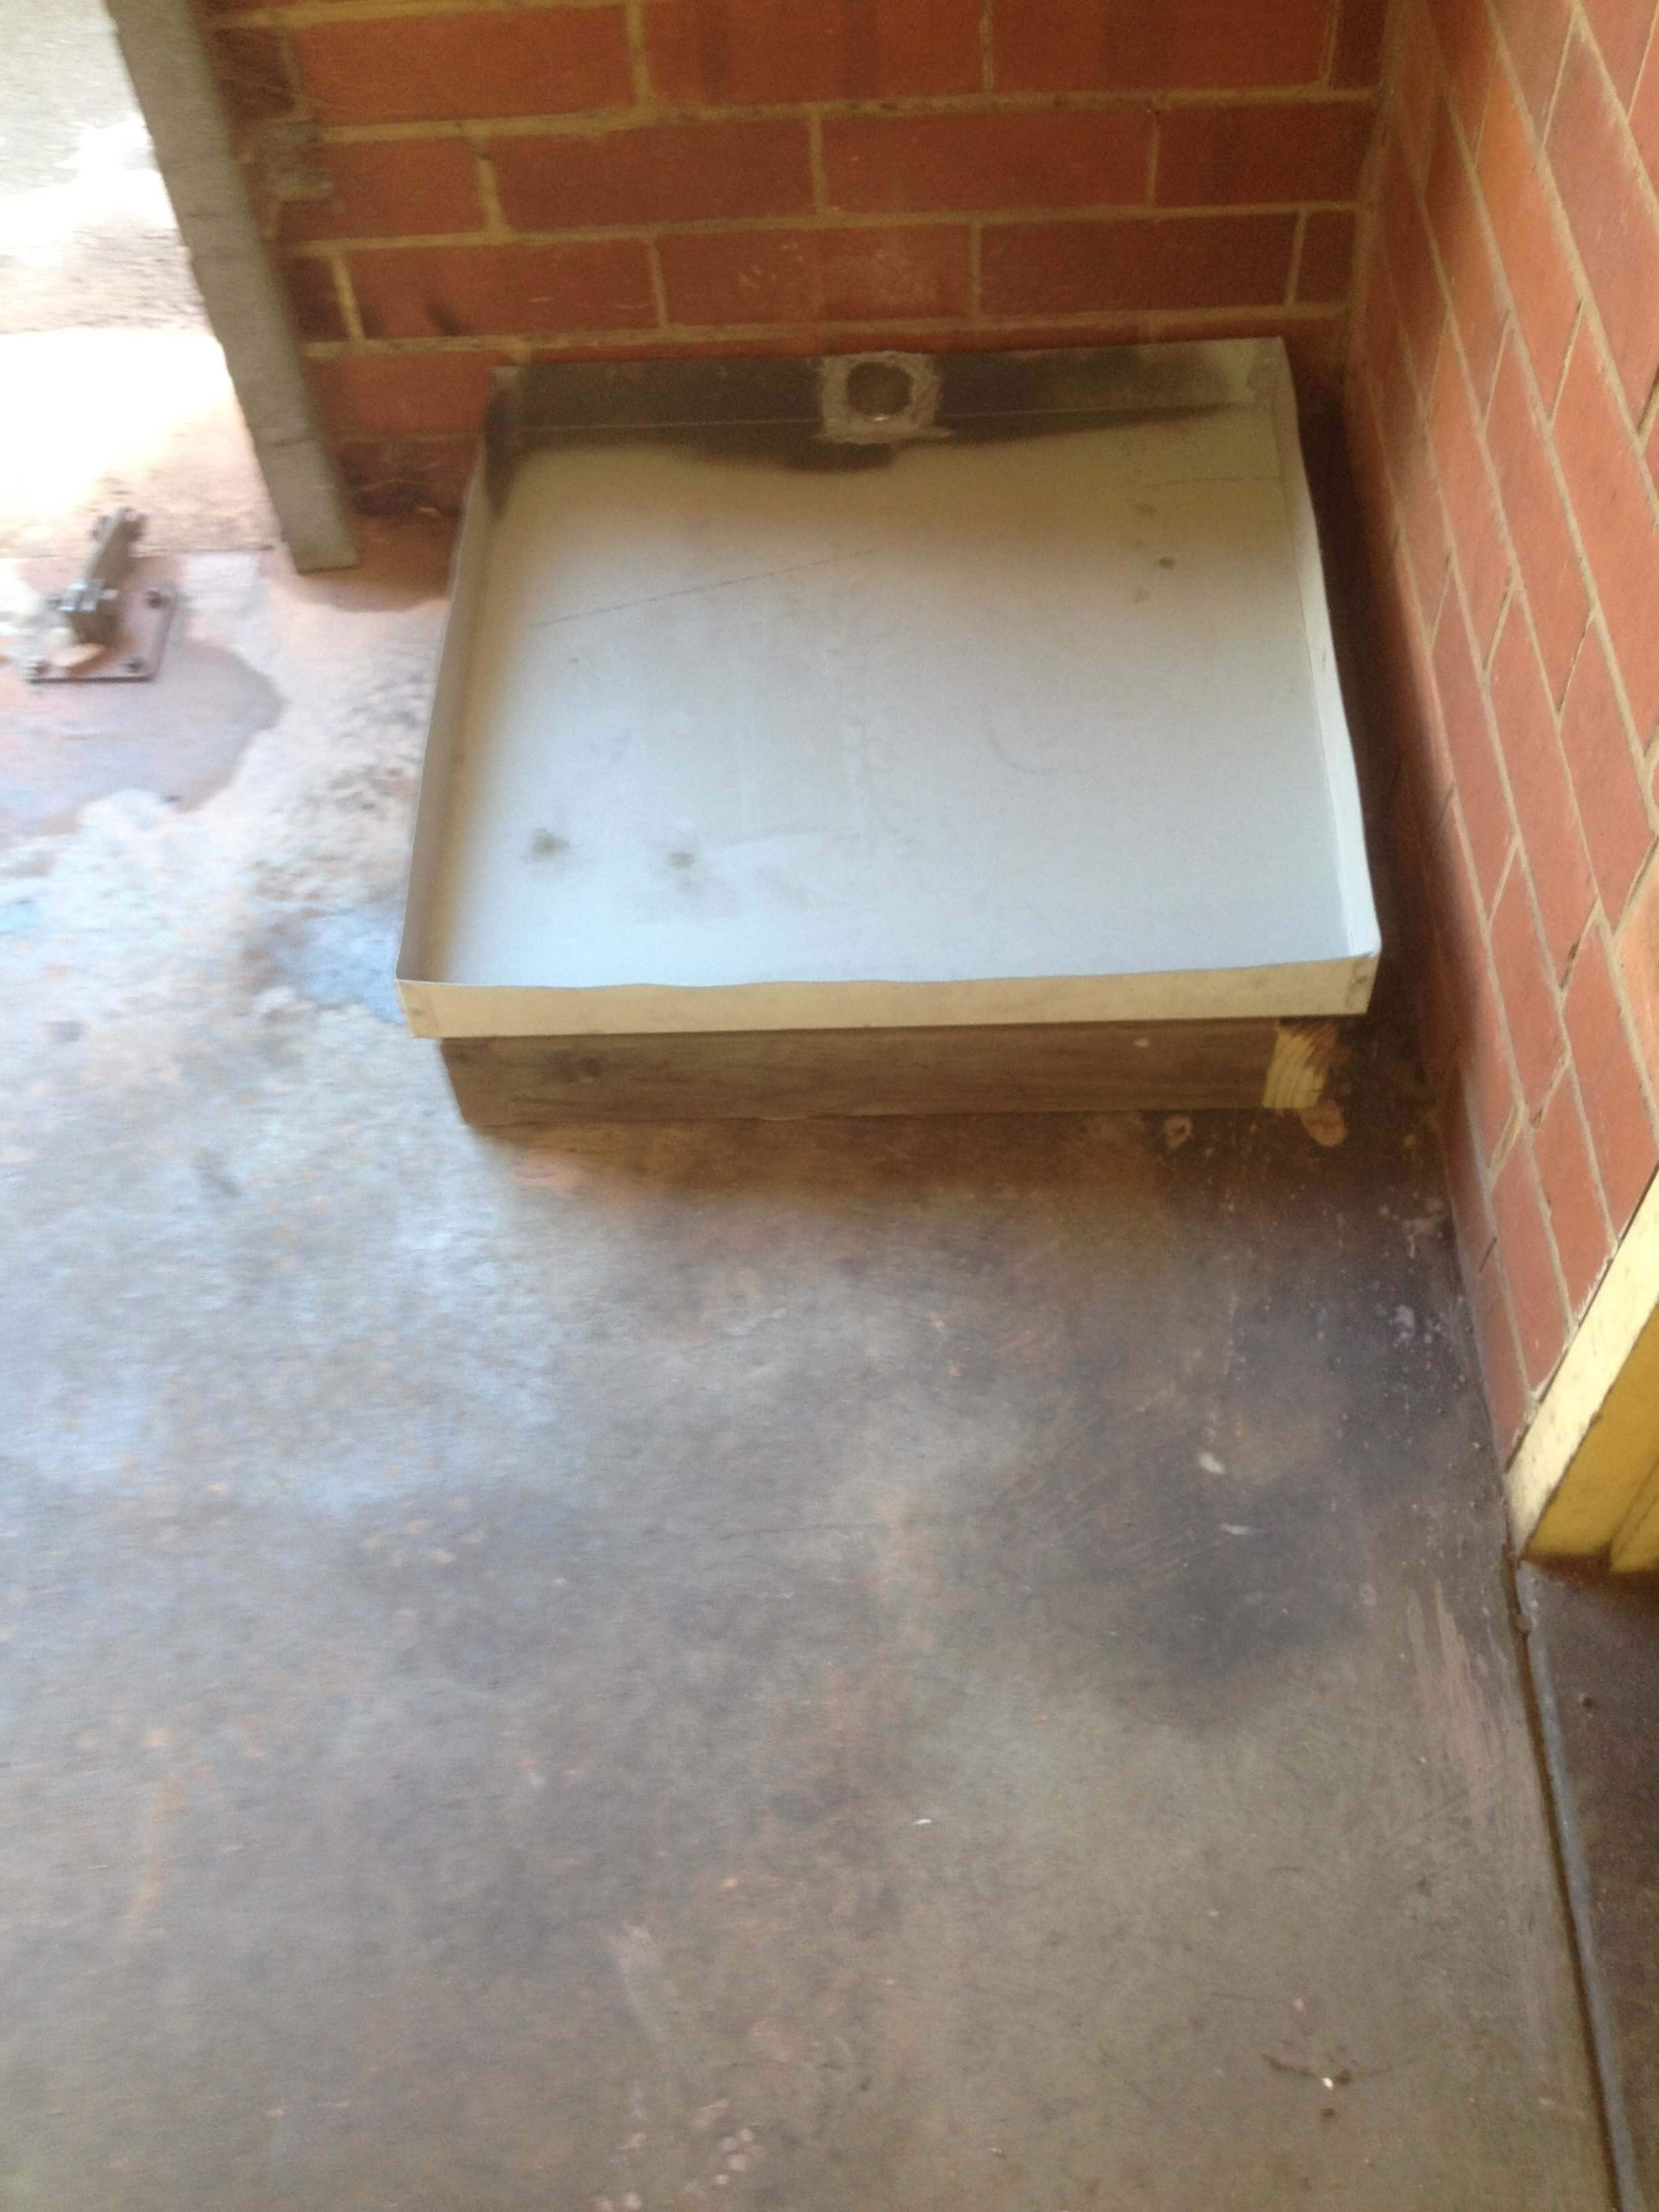 Everyday Plumbers Residential Hotwater Services - Outside Machine Platform Setup 1